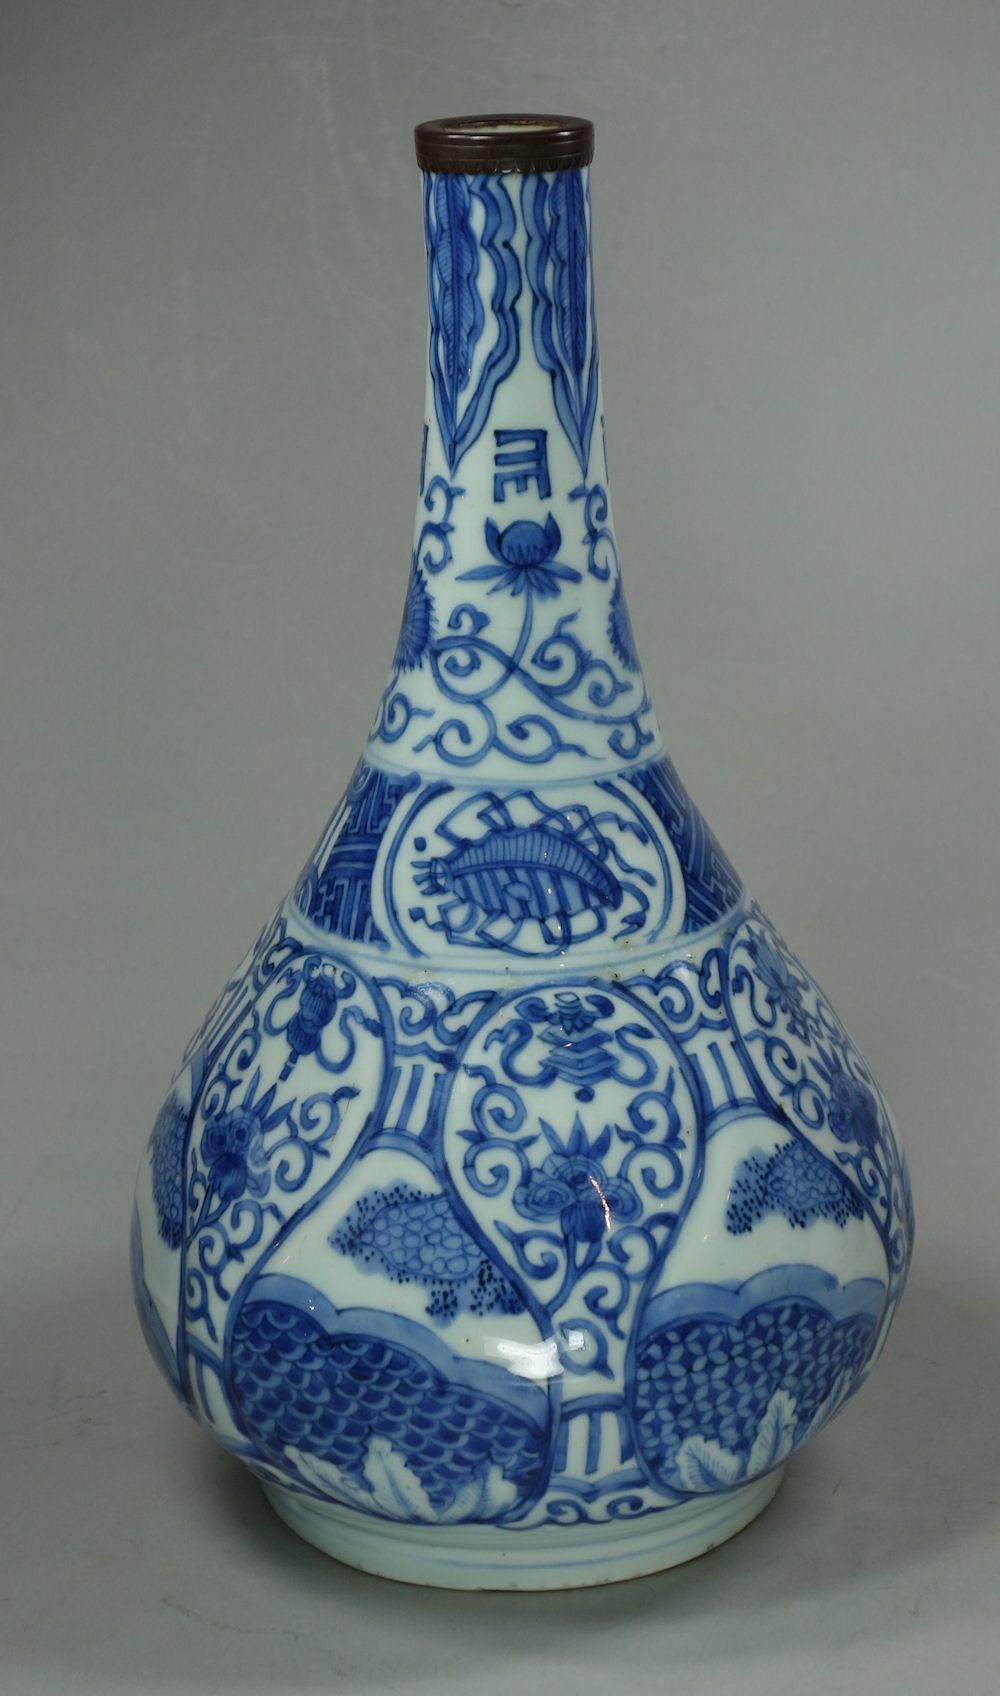 White Ceramic Pumpkin Vase Of Chinese Blue and White Kraak Bottle Vase Wanli 1573 1610 with A Inside Chinese Blue and White Kraak Bottle Vase Wanli 1573 1610 with A Moulded Body Of Stylised Foliage Height 10 1 4in 26 Cm